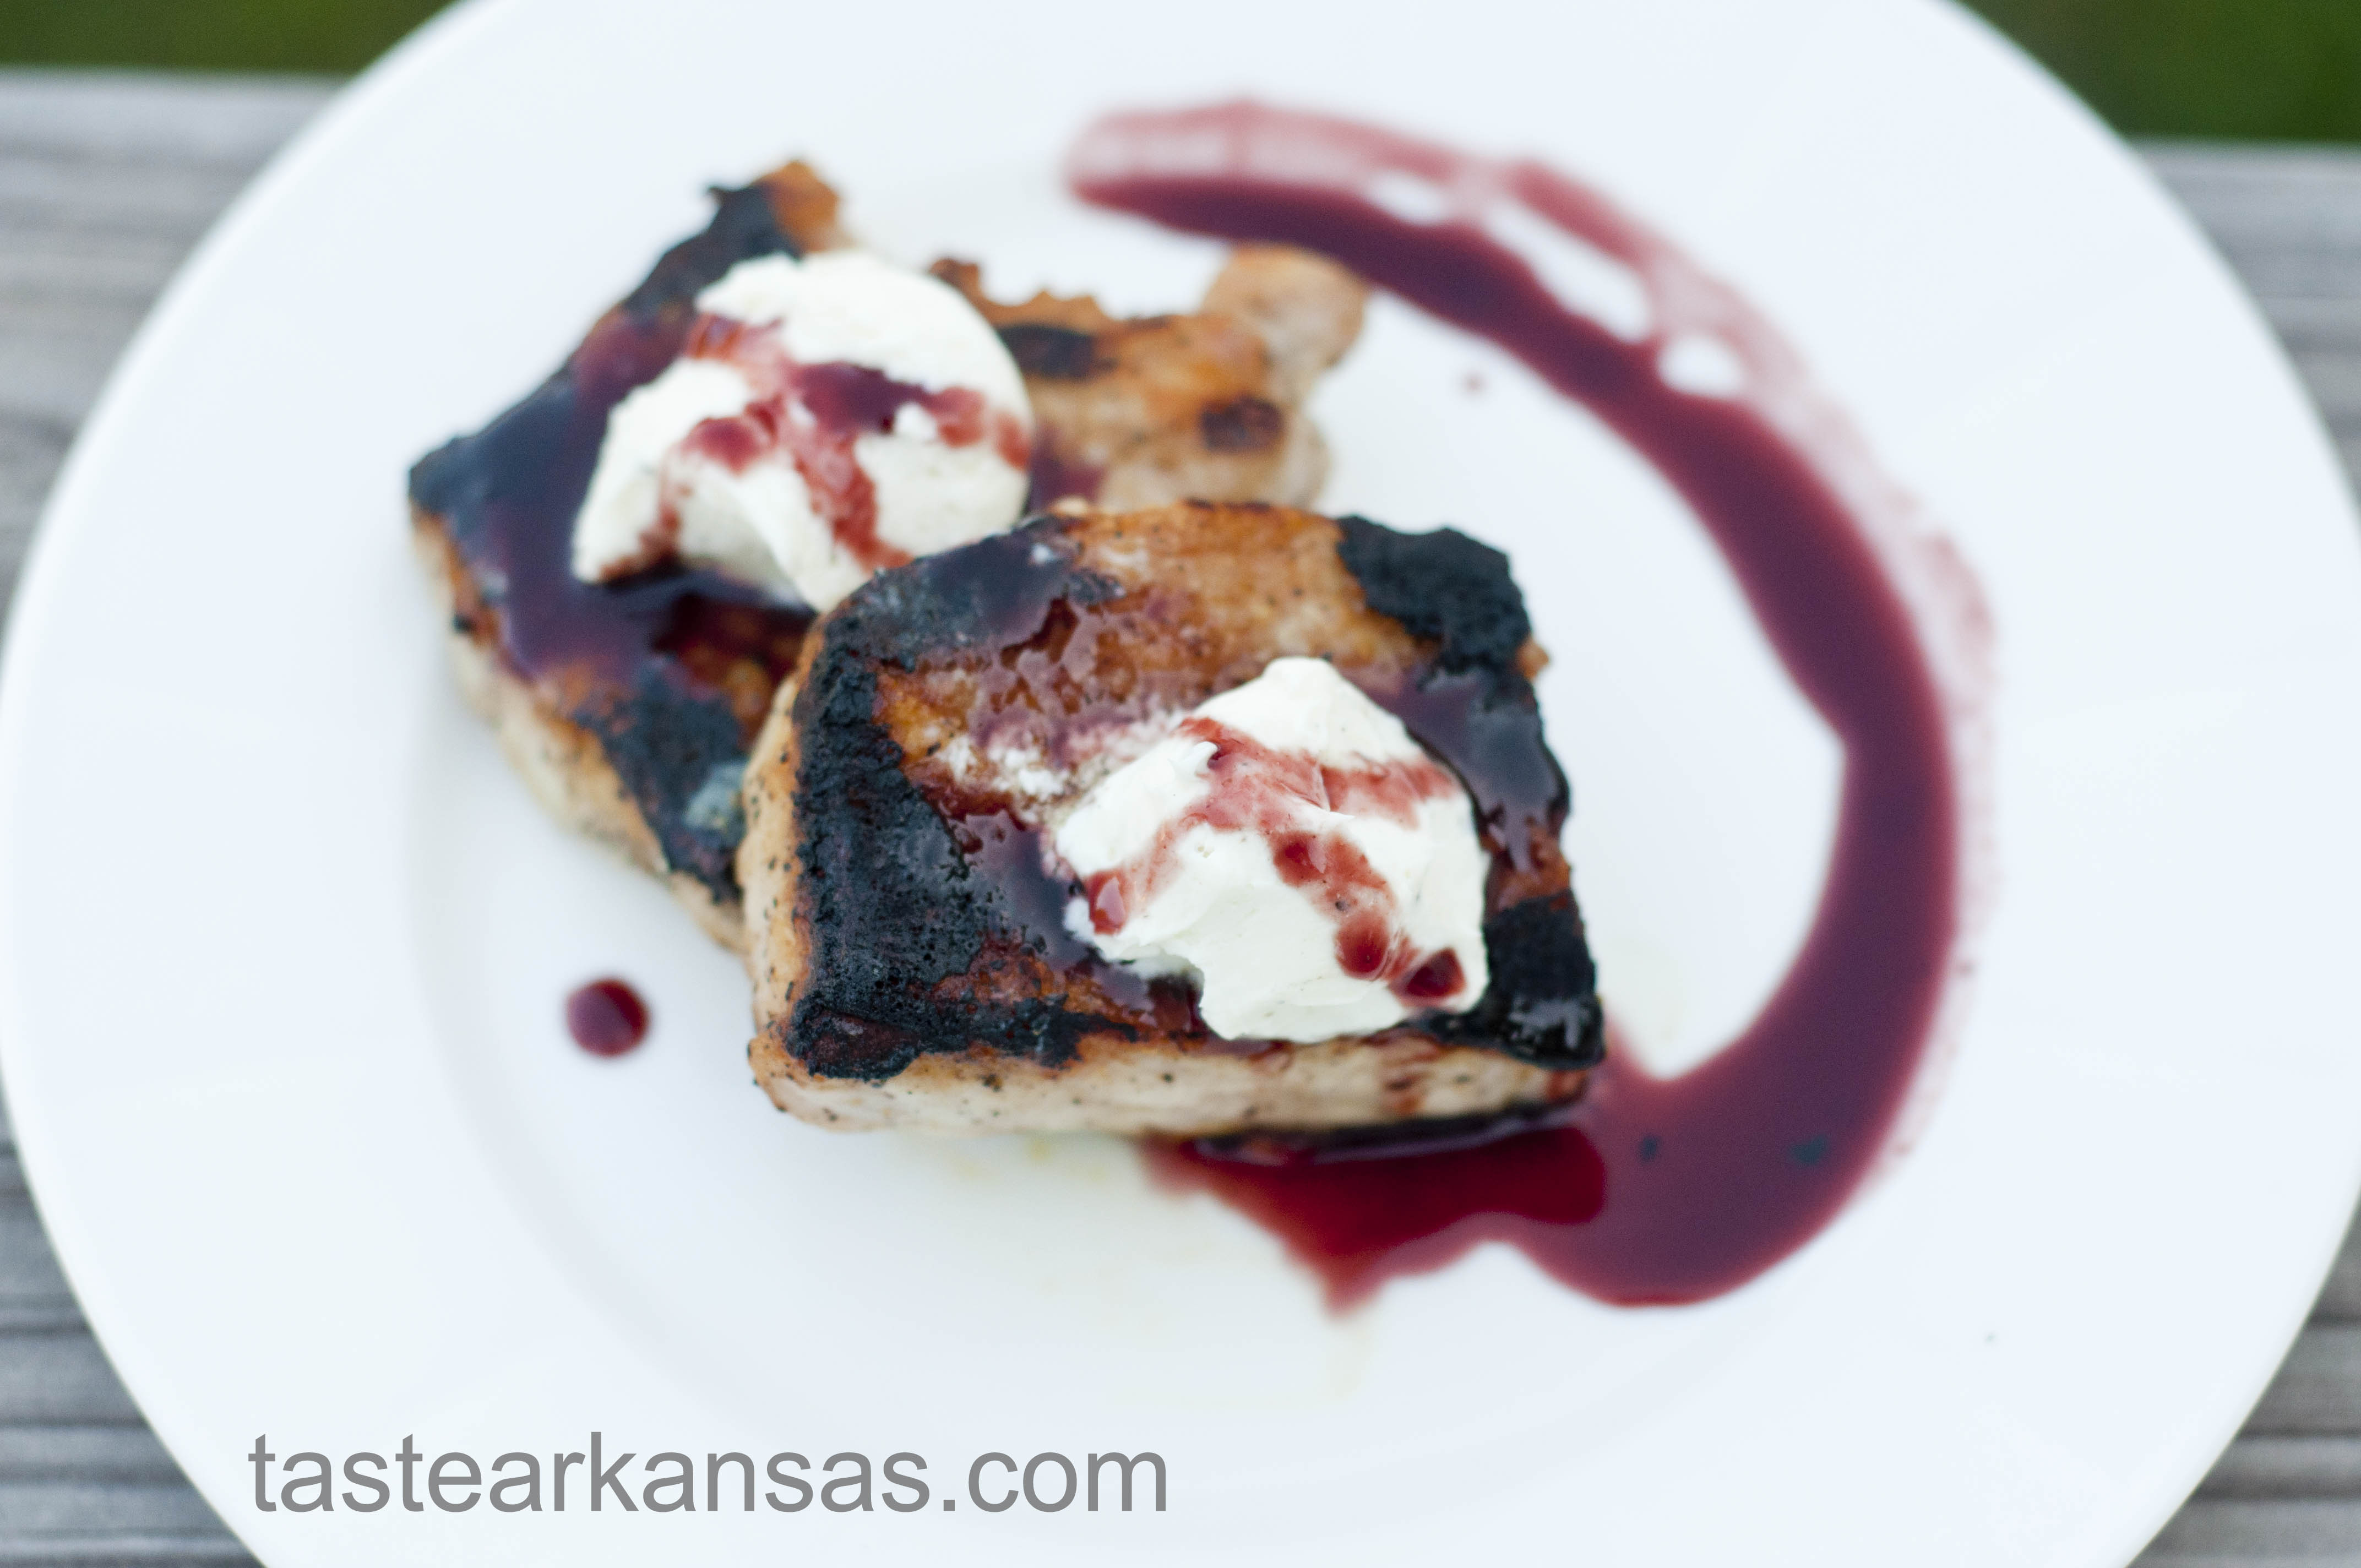 Pork Loin Medallions with Goat Cheese Butter and a Blackberry Balsamic Reduction